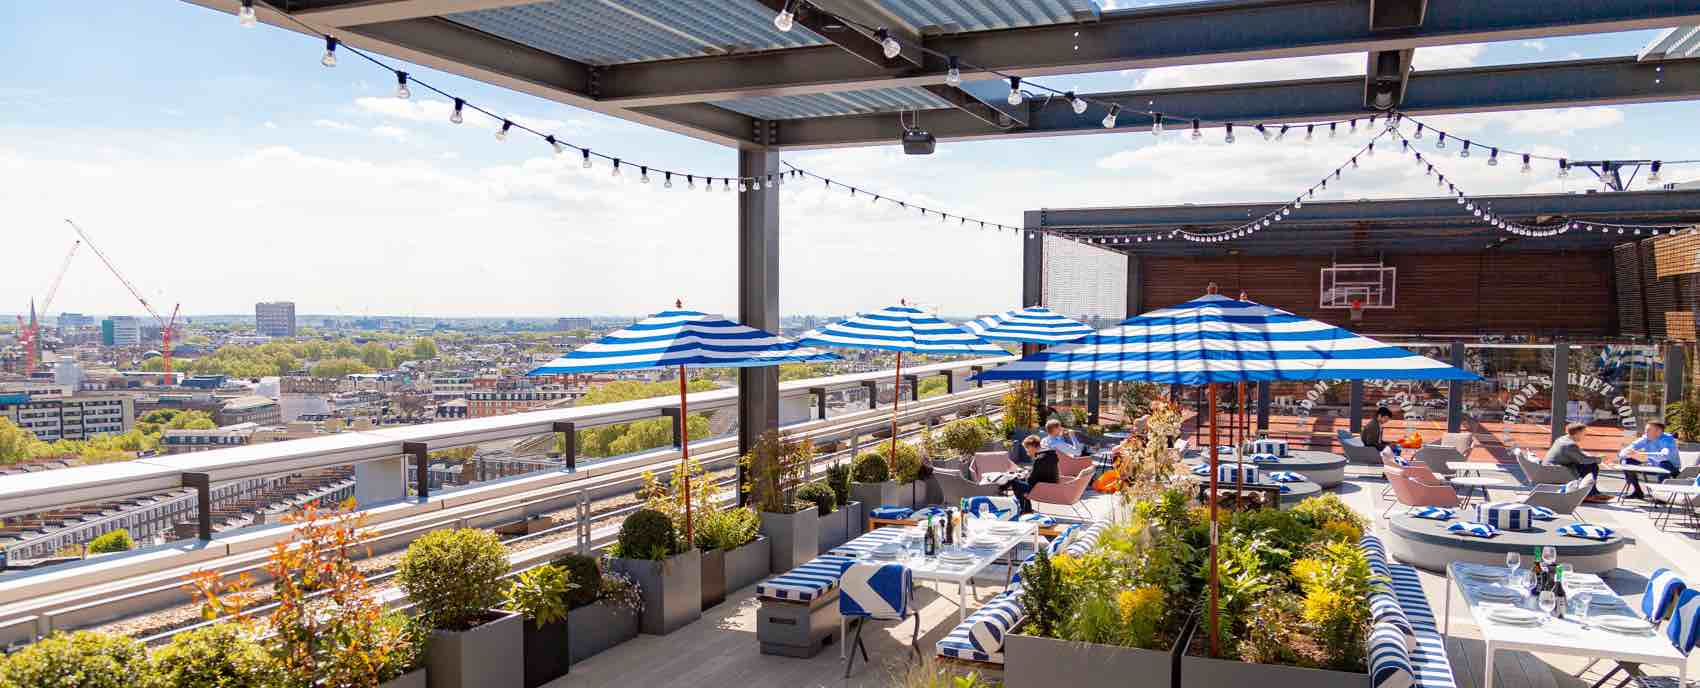 Catch some rays and views at Skylark Roof Garden, where a delightful cocktail list only adds to the attraction.